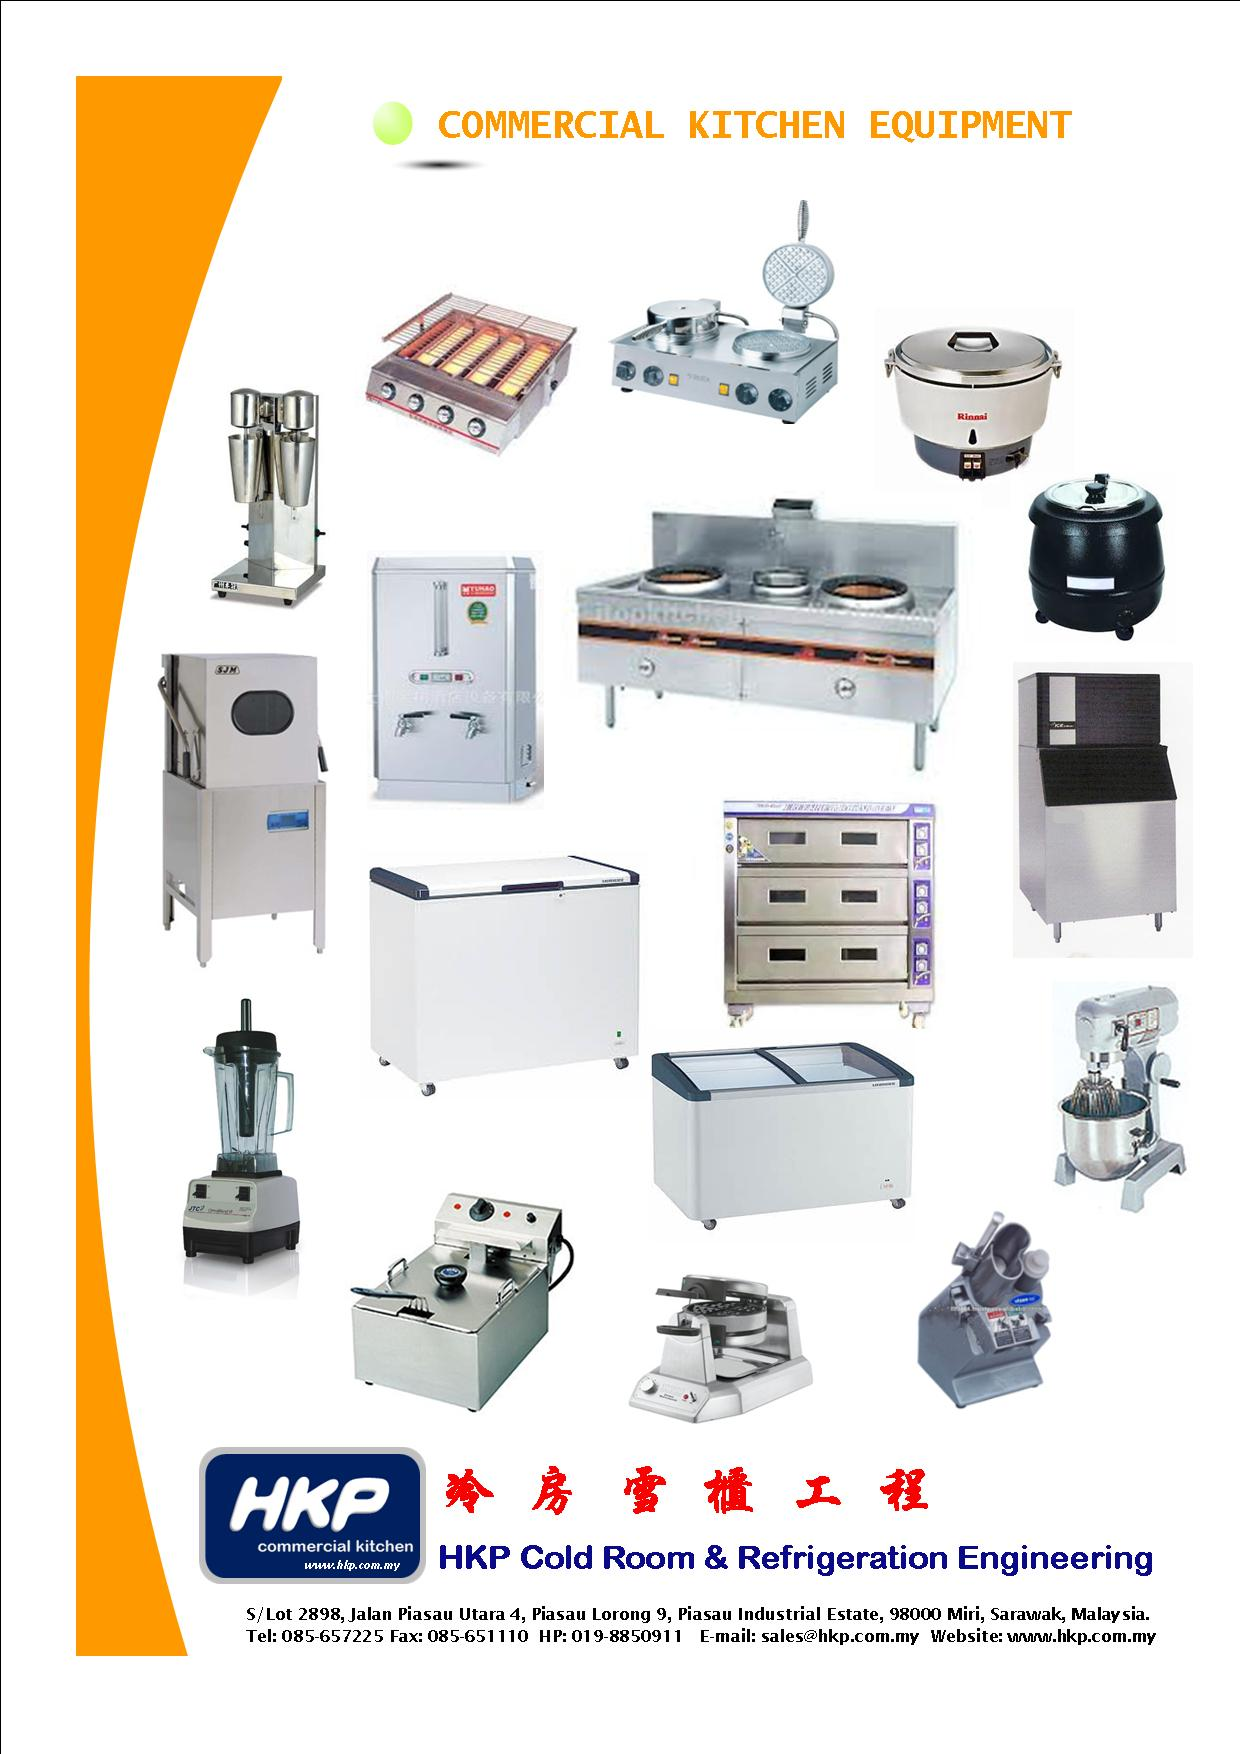 commercial-kitchen-equipment-1